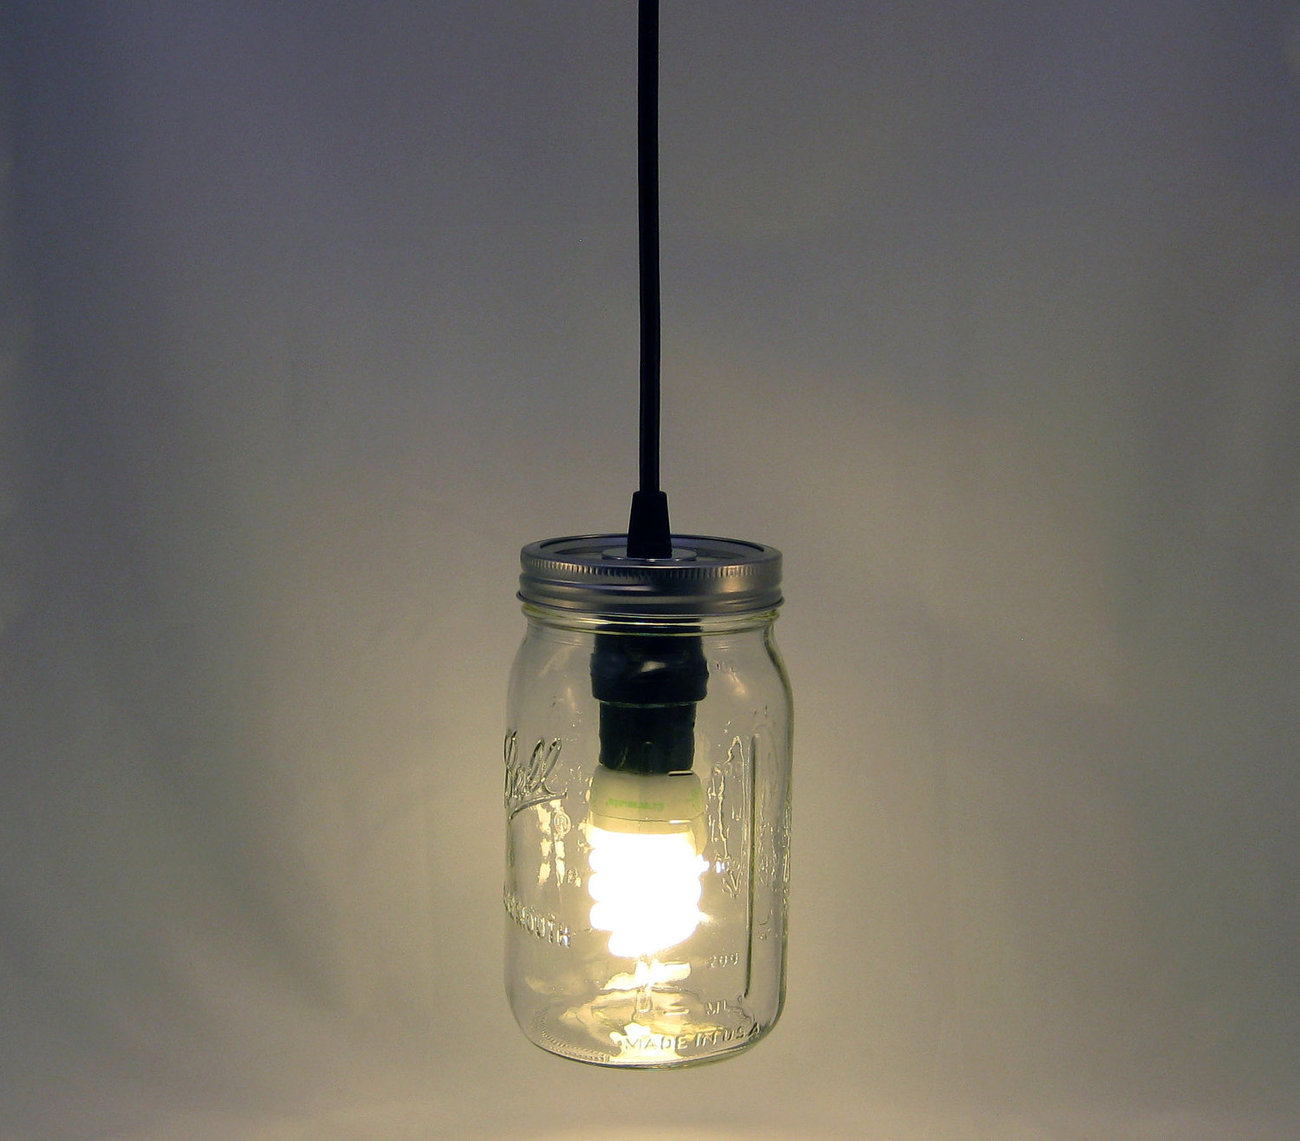 Ball Mason Jar Hanging Pendant Light w/ Canopy - BMQL-SVTc